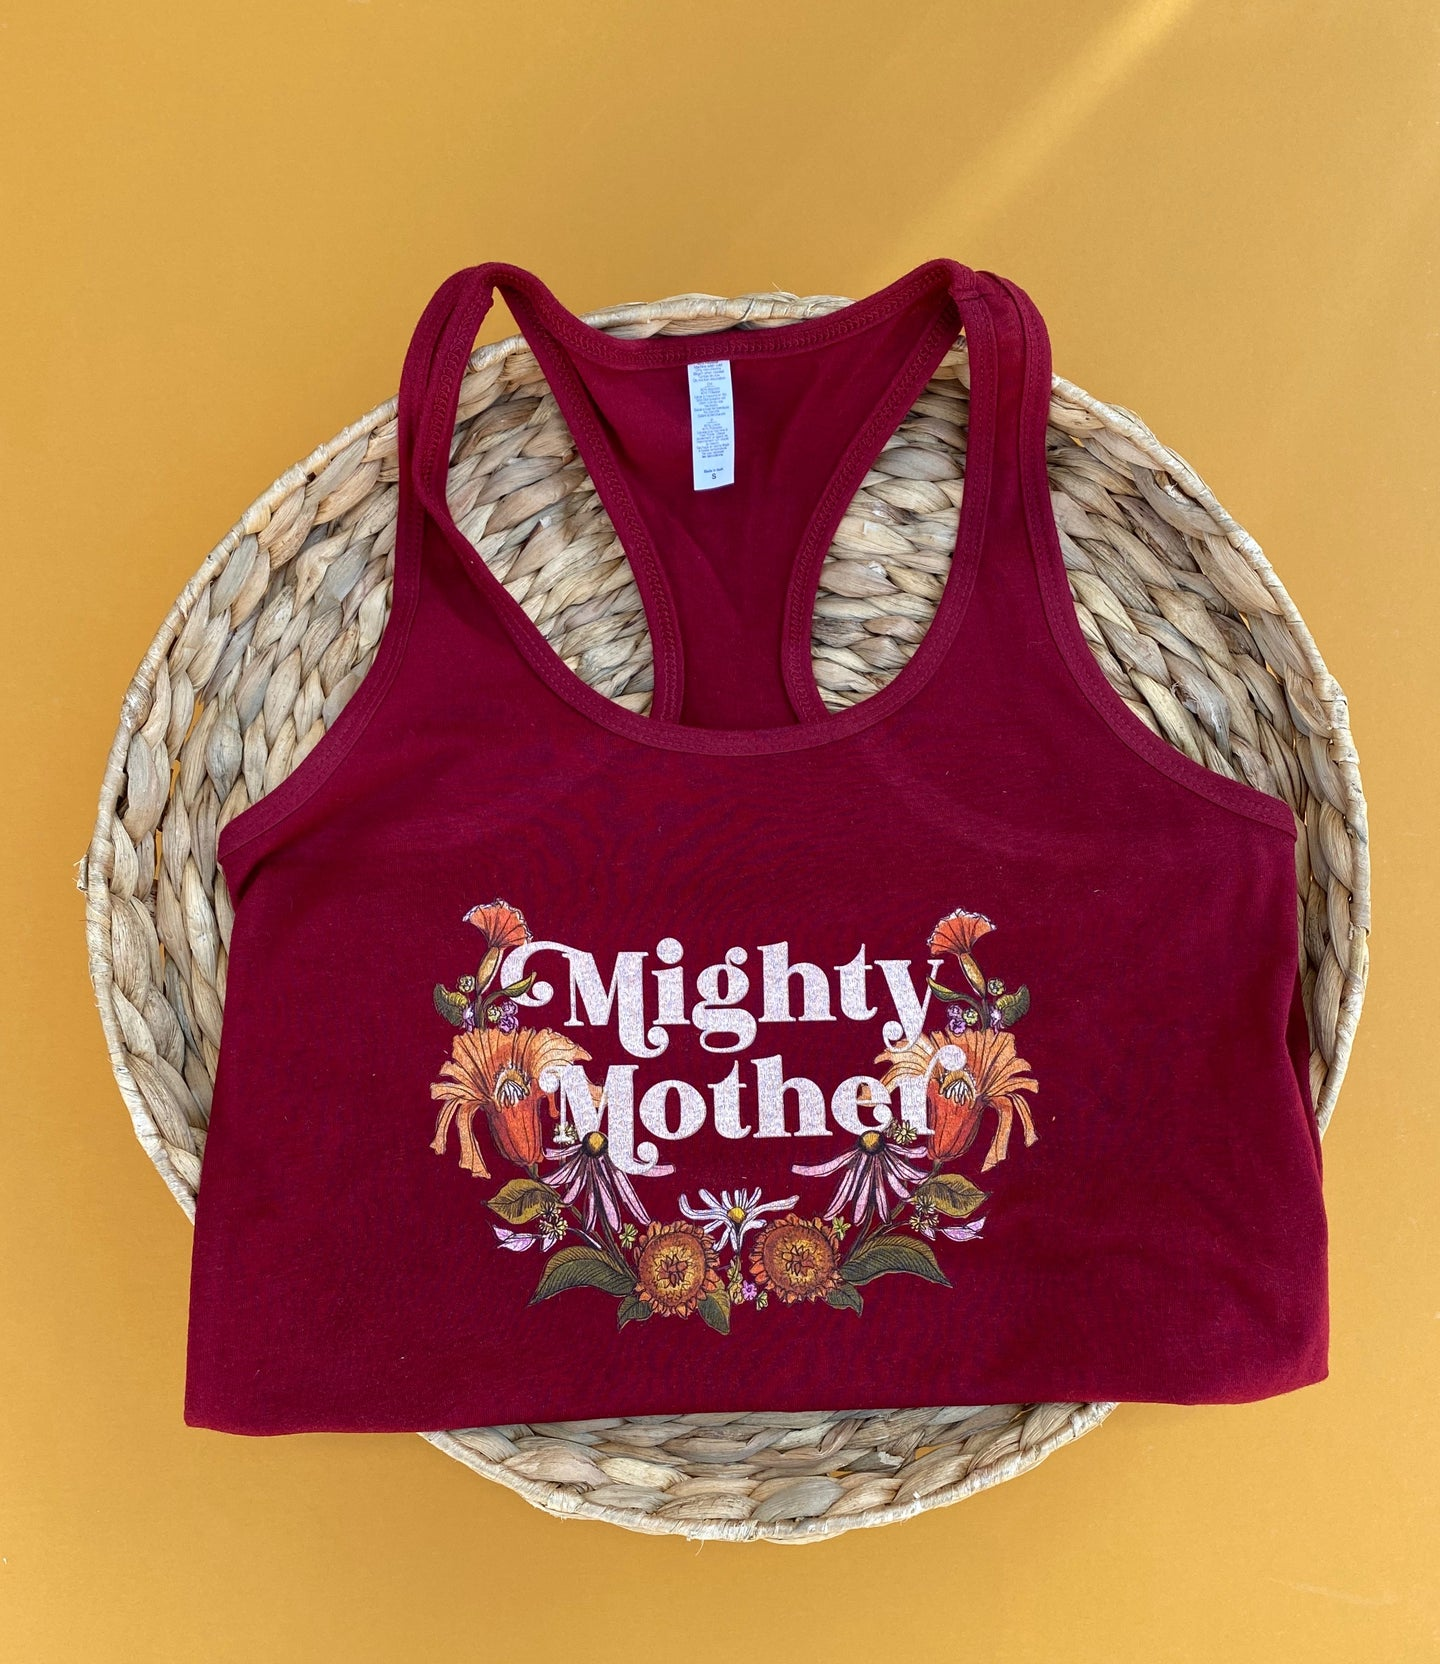 Mighty Mother - Racerback Ladies Tank Top - Cranberry [Ready to Ship]